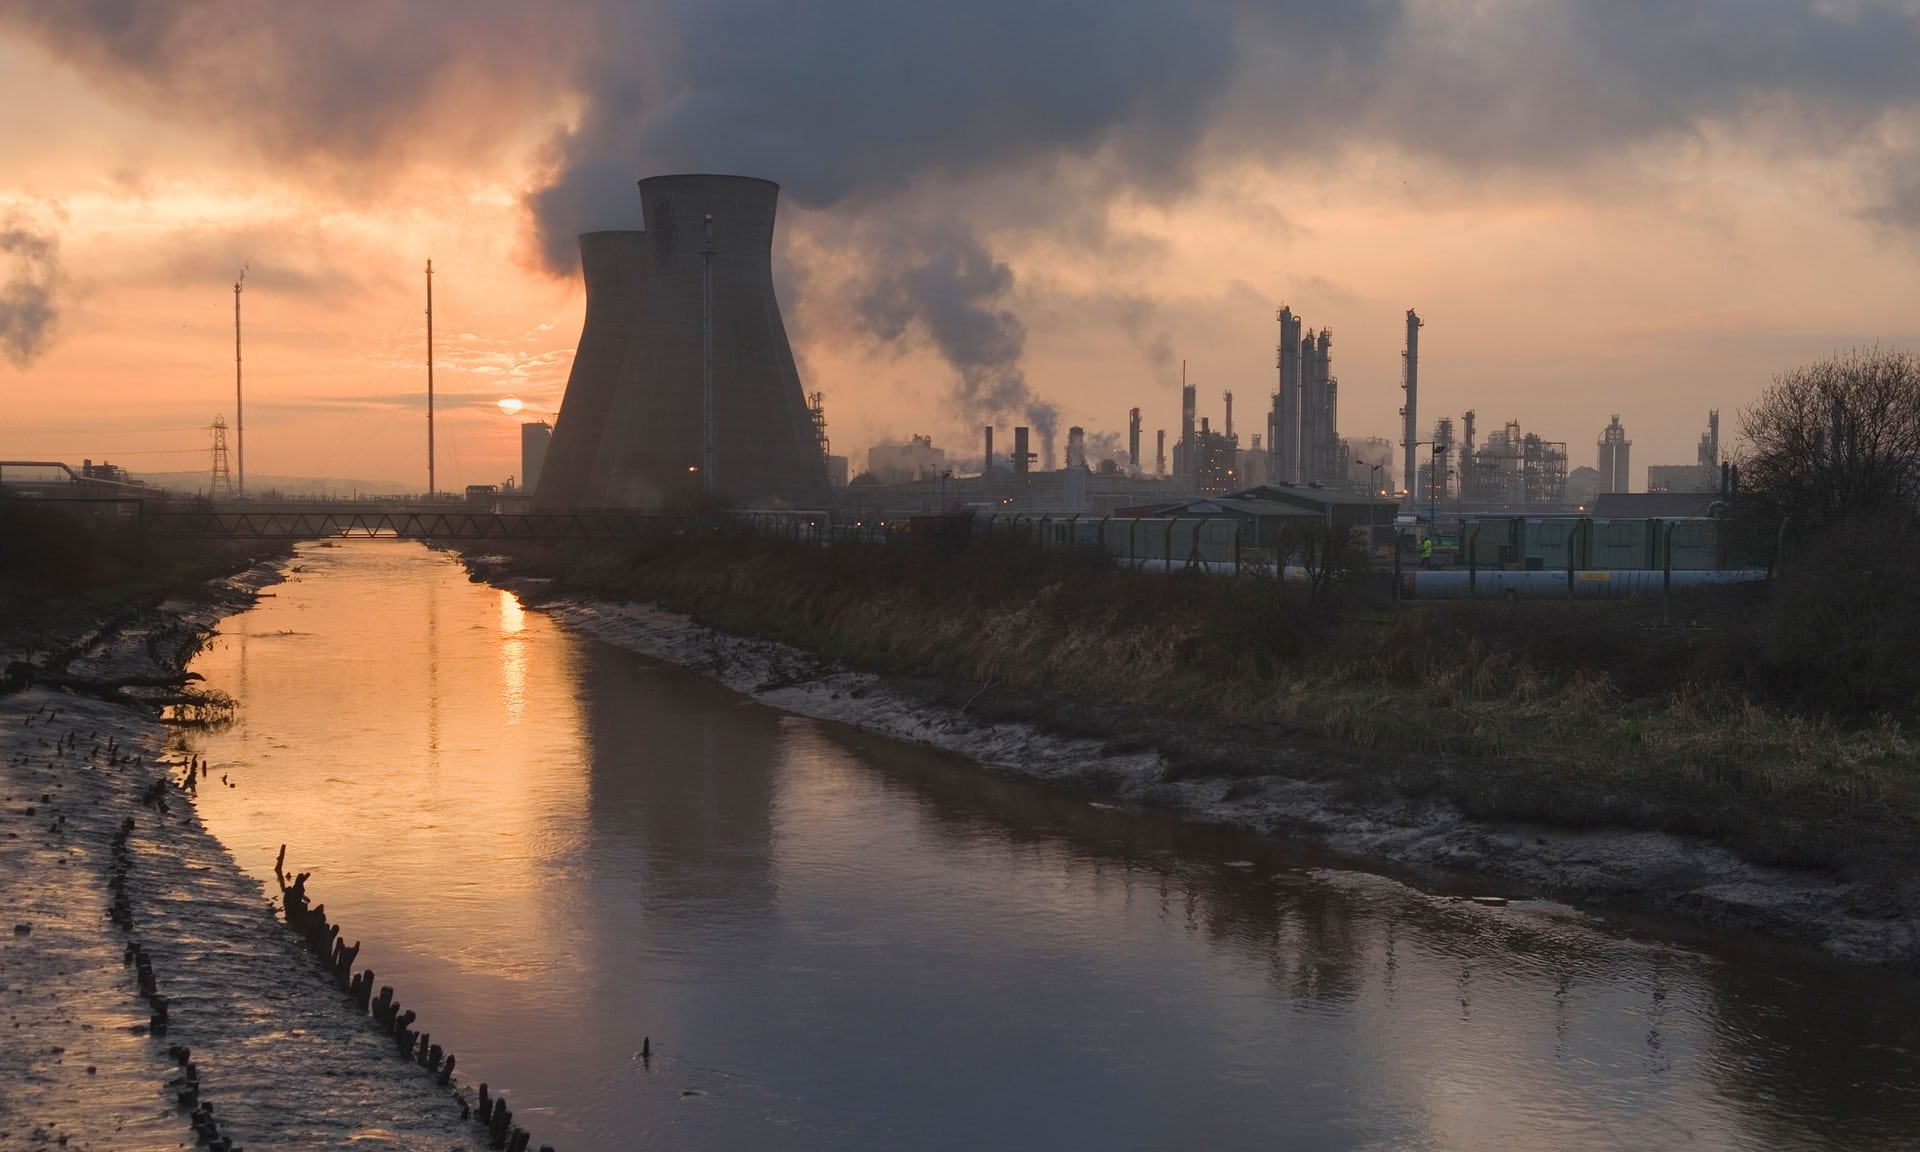 Some rare good climate news: the fossil fuel industry is weaker than ever - Bill McKibben